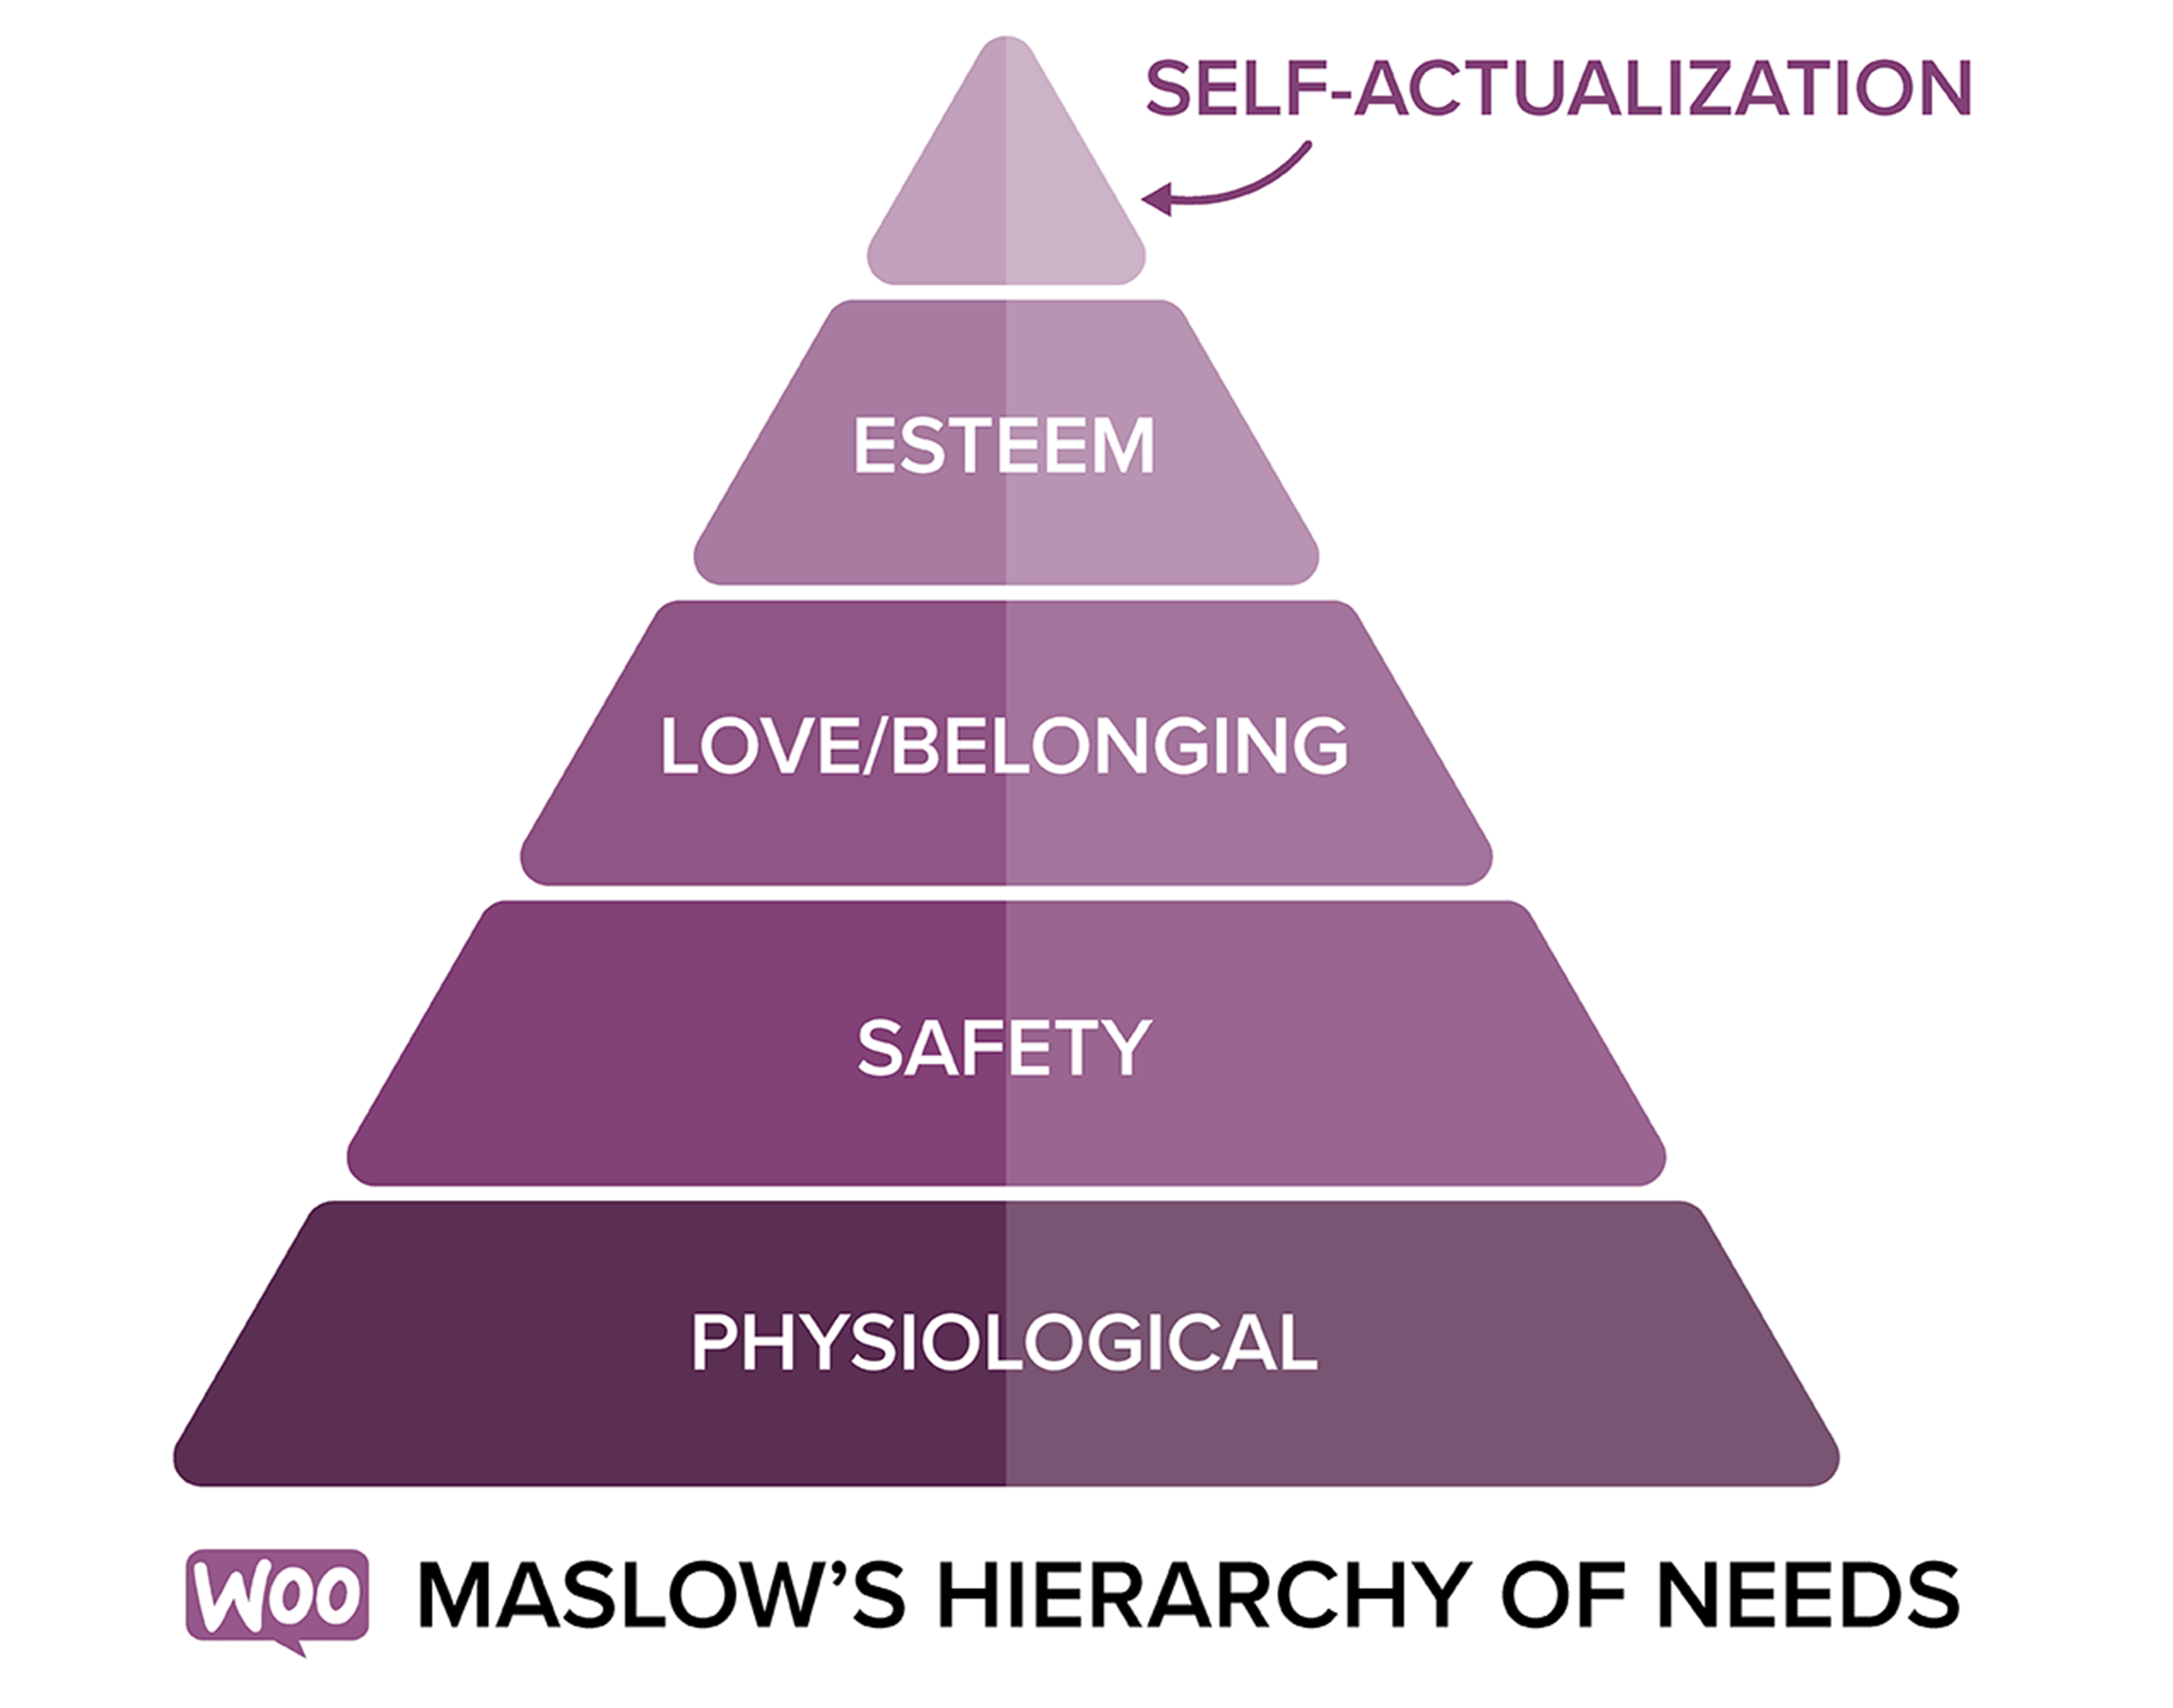 Maslow's Hierarchy of Needs, which outlines the needs of your customers.